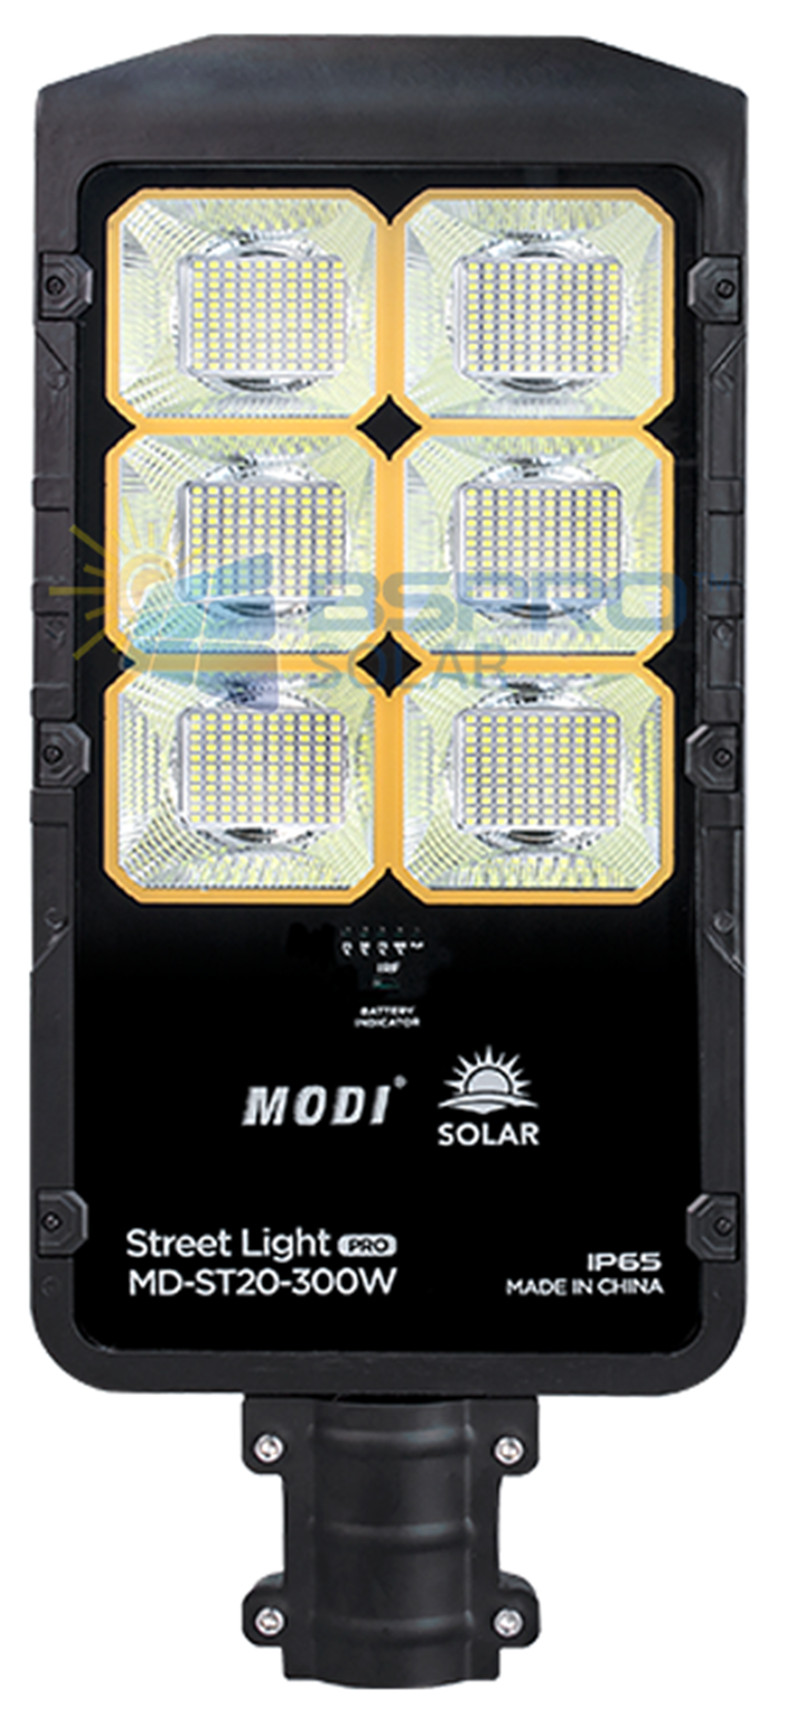 Solar street light without cable connection